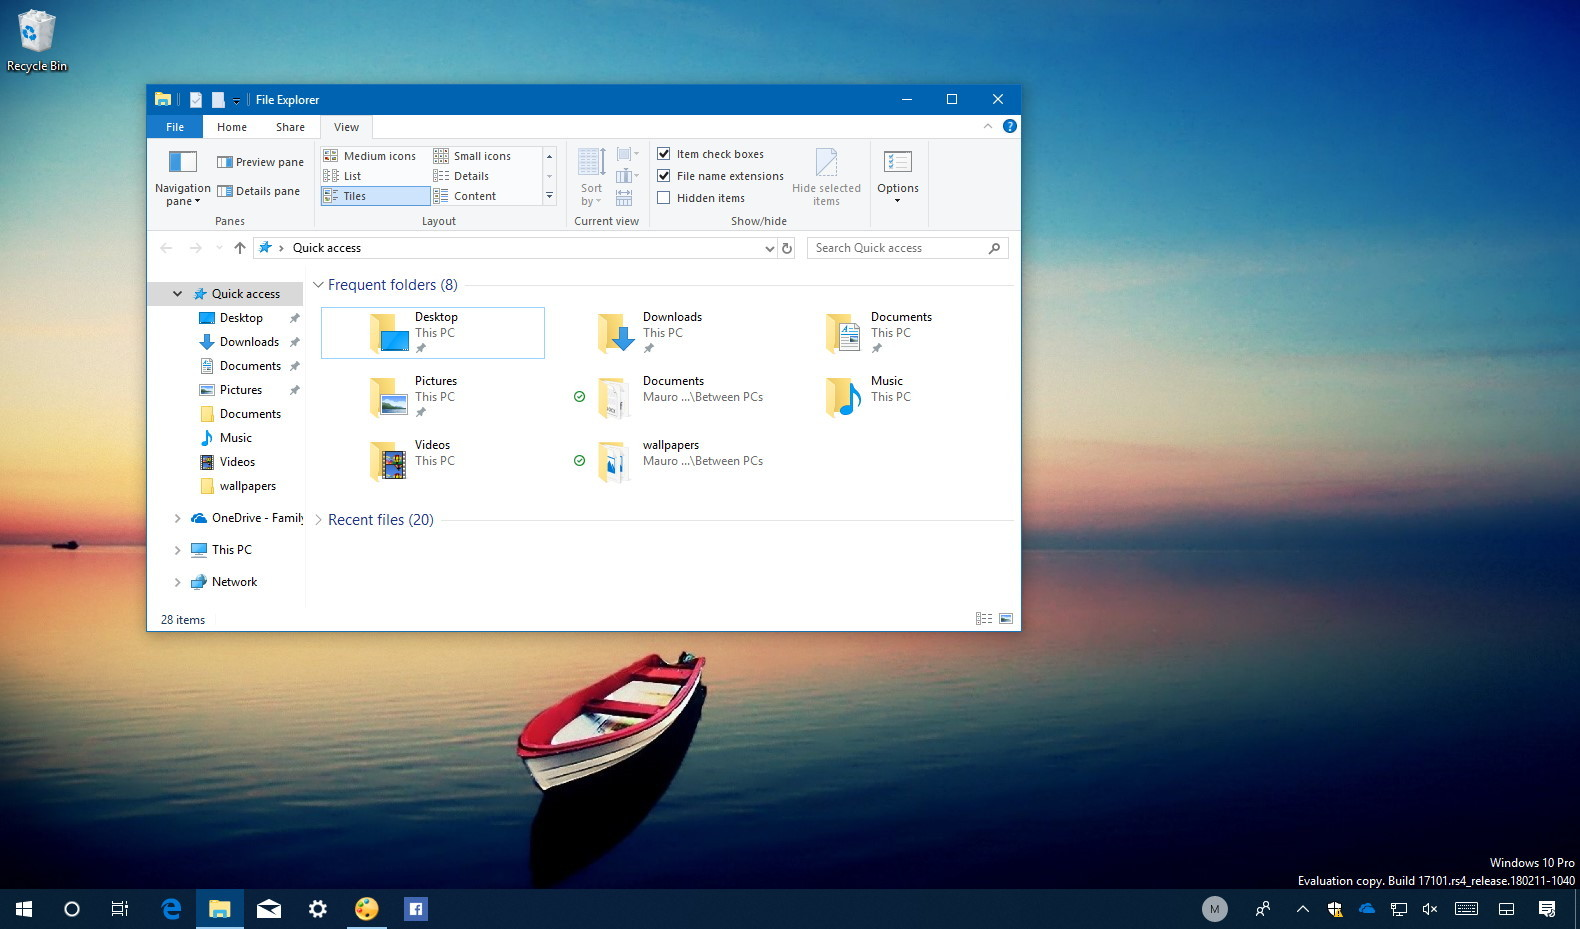 How to stop onedrive sync in windows 10